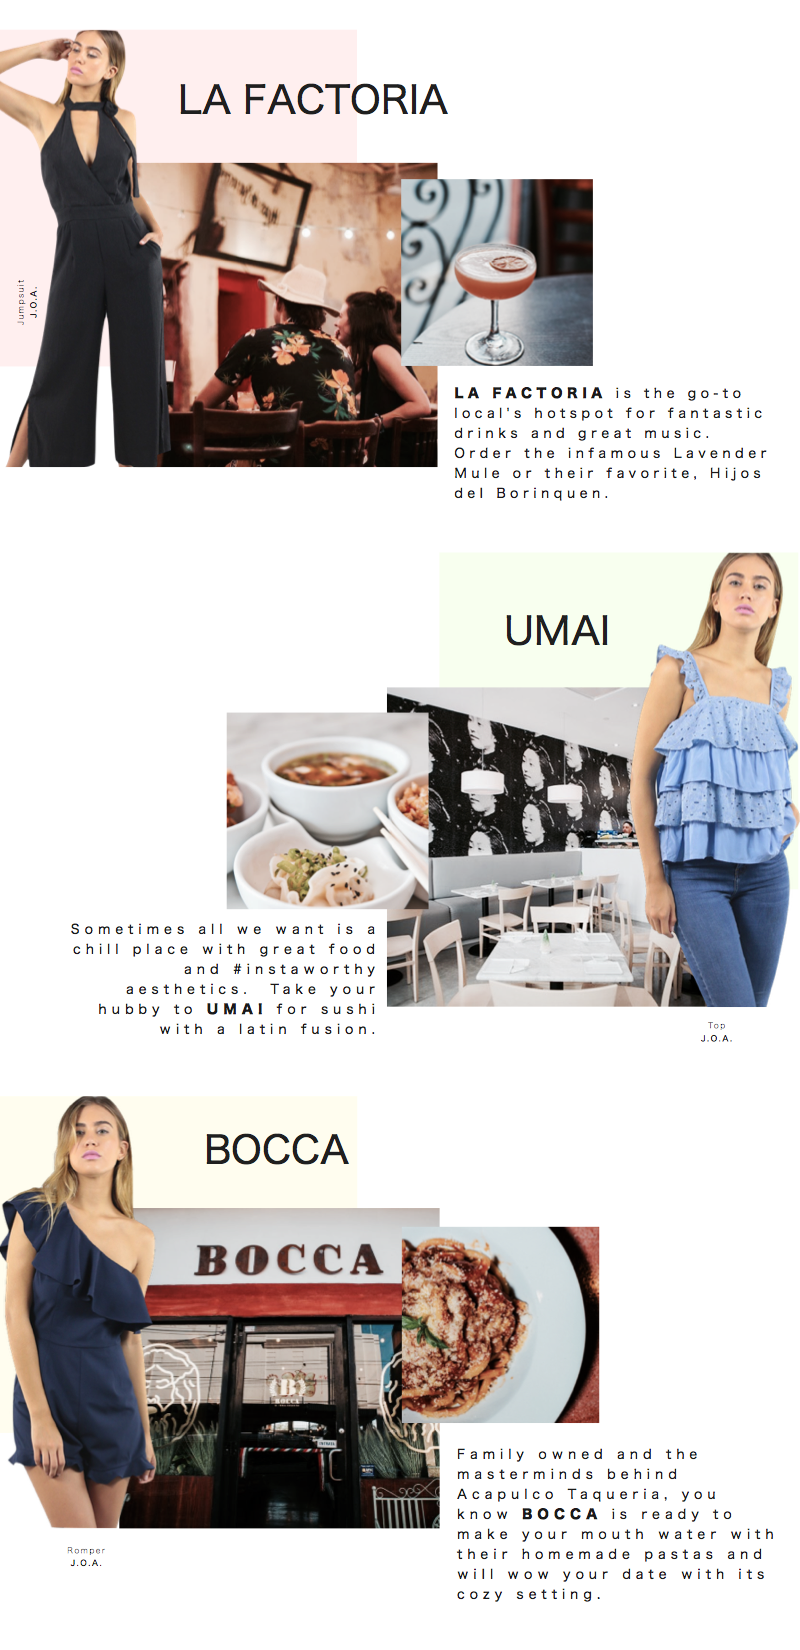 La Factoria Bar | Umai Restaurant | Bocca Restaurant